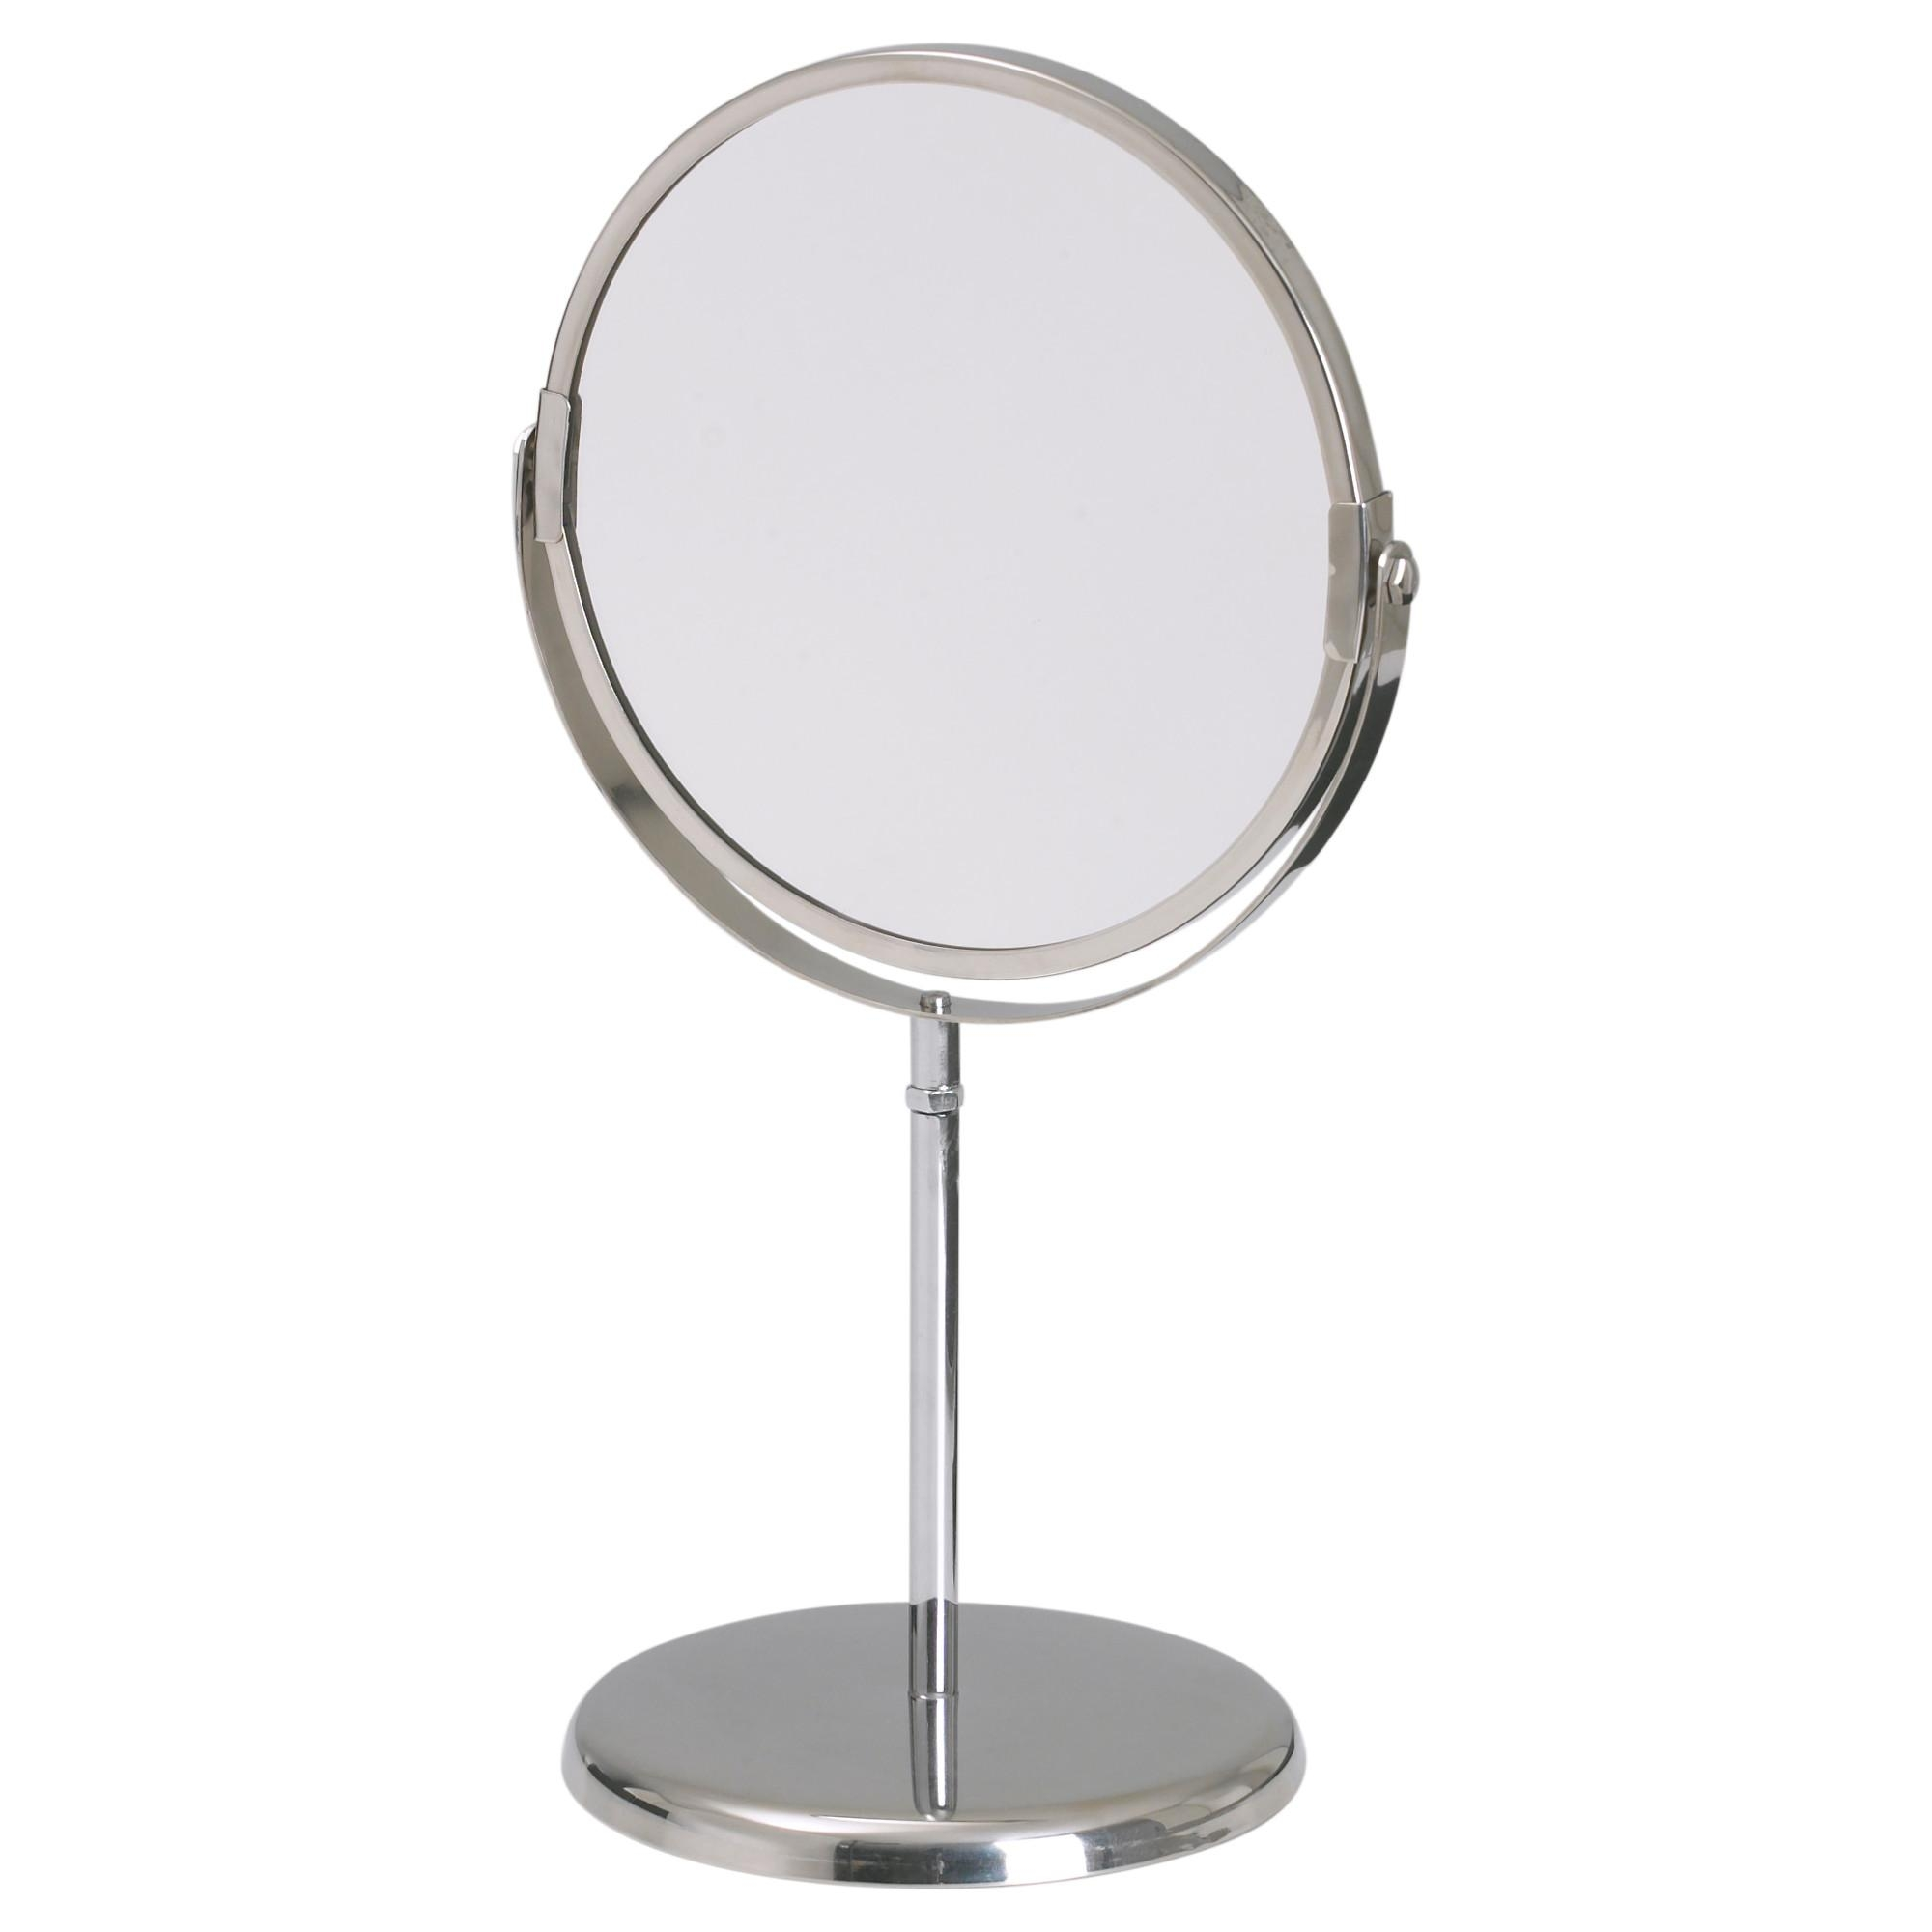 Trensum Mirror – Ikea For Standing Table Mirror (Image 18 of 20)